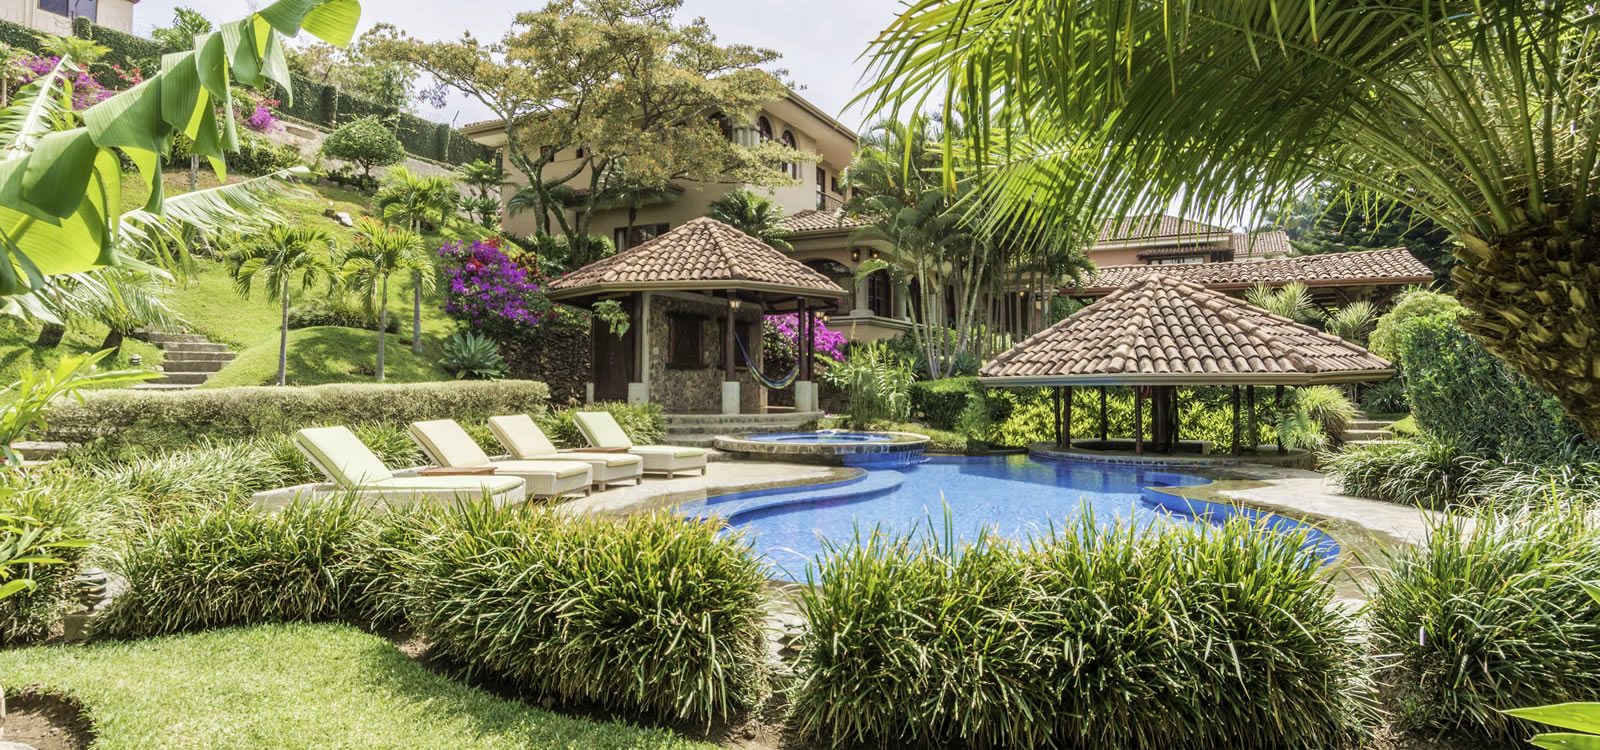 5 bedroom luxury villa for sale villa real santa ana for Costa rica luxury villa